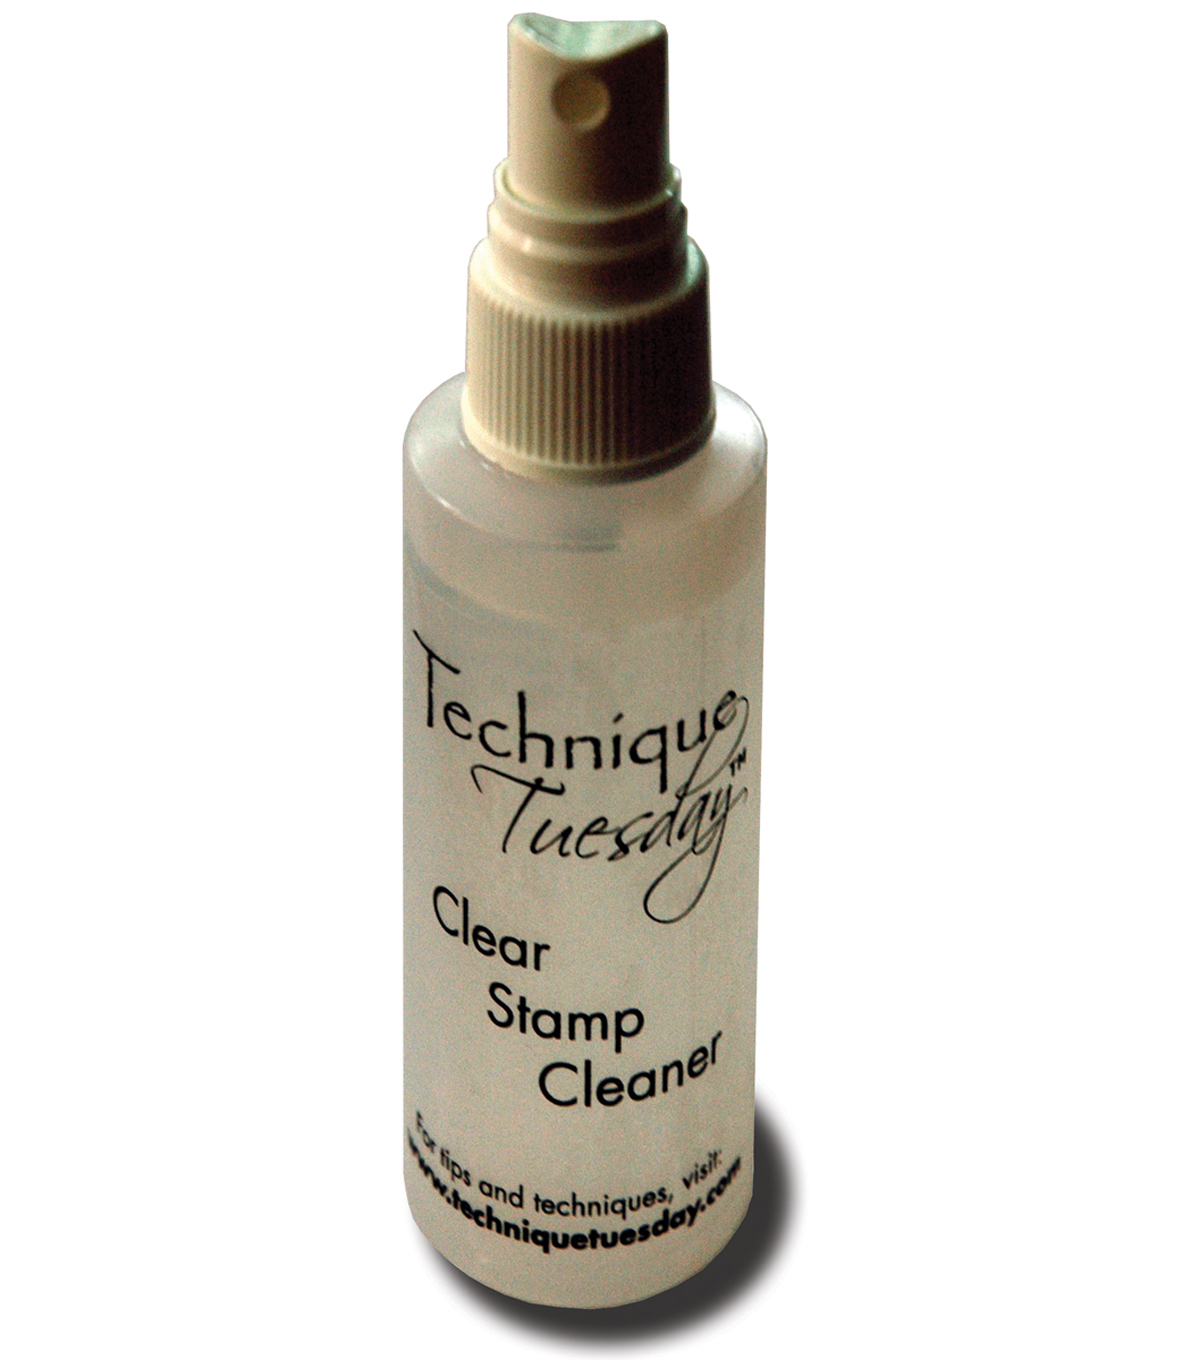 Technique Tuesday Clear Stamp Cleaner 2 Ounces